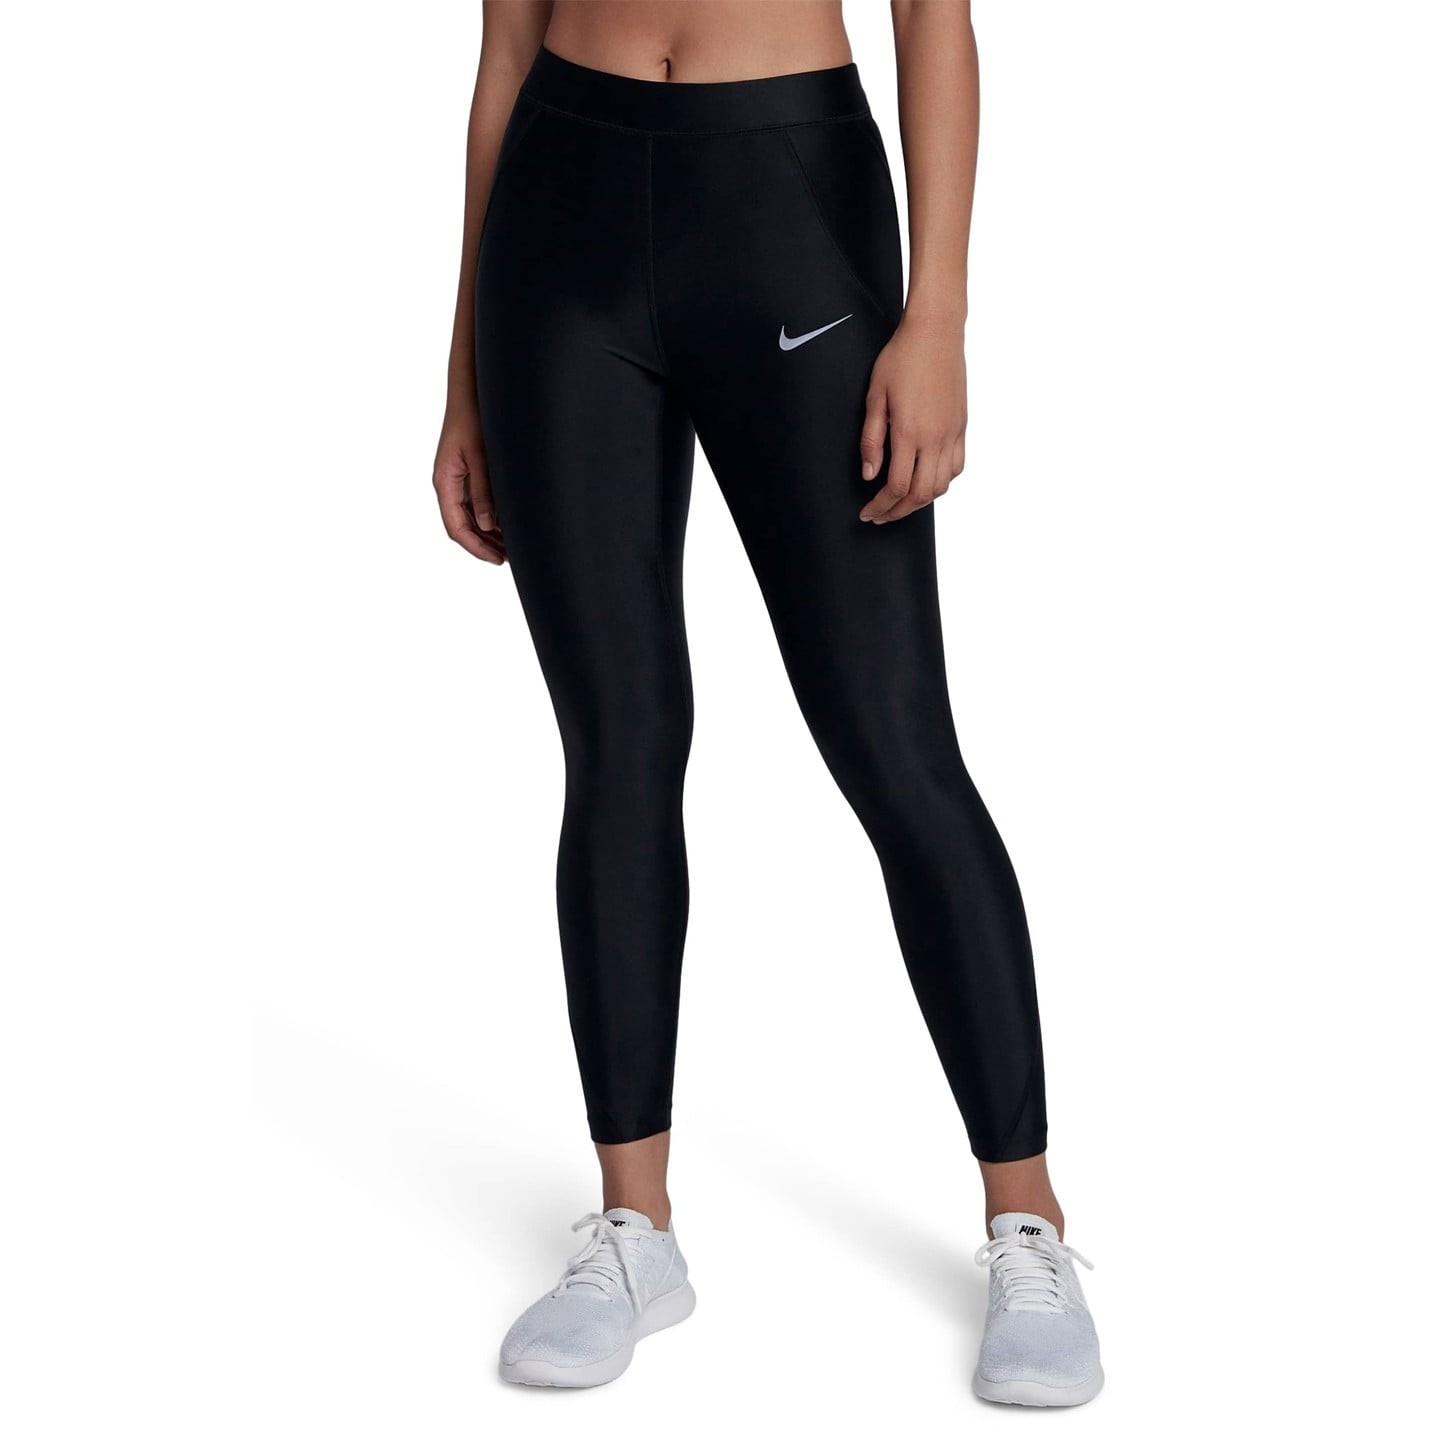 buy popular 867c6 f6b29 Best Black Friday and Cyber Monday Fitness Deals   POPSUGAR Fitness